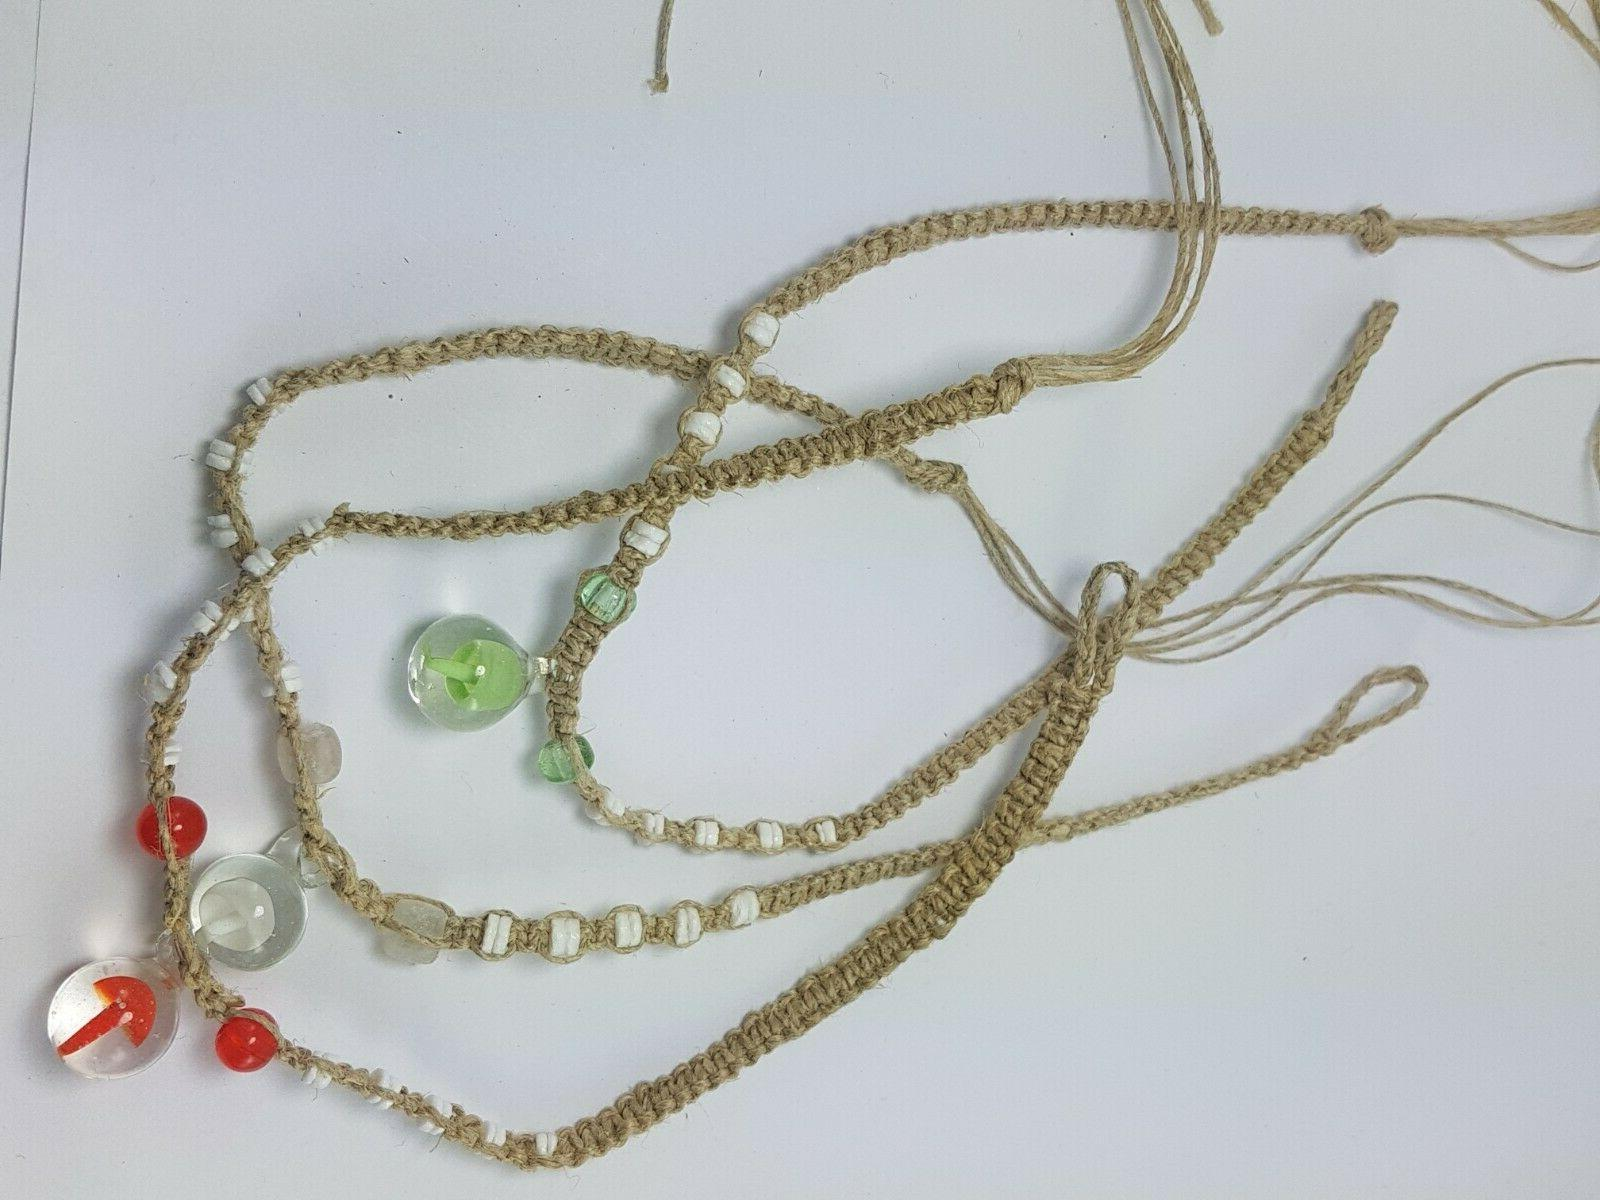 WHOLESALE 12 Necklace with Drop Mushroom Glass